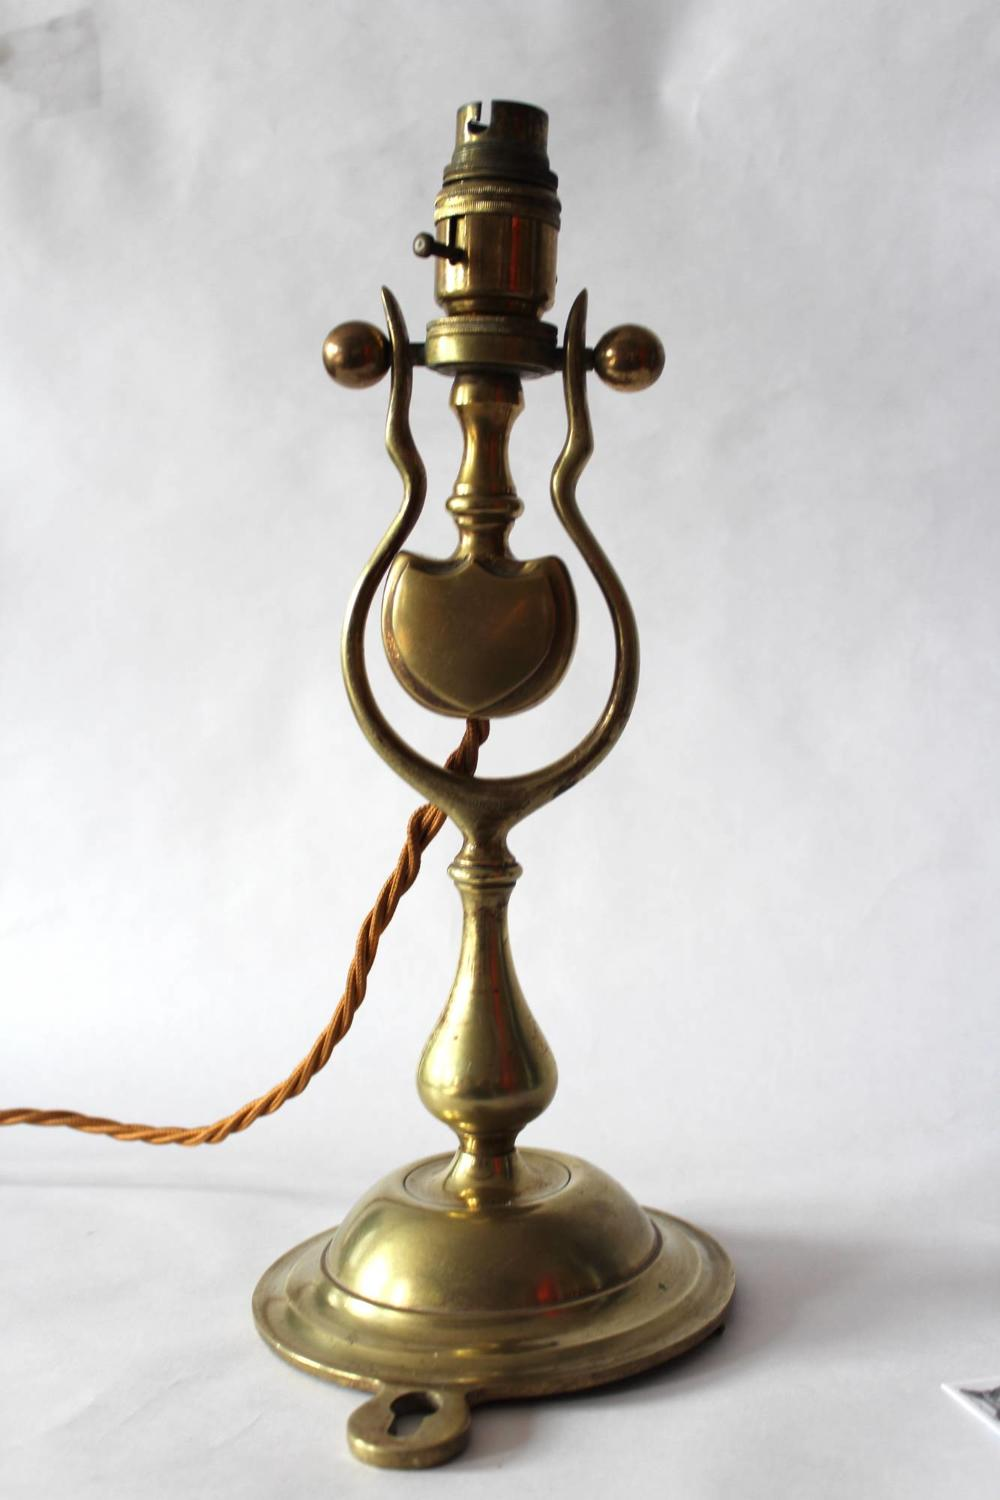 Brass Ship's Gimbal Lamp